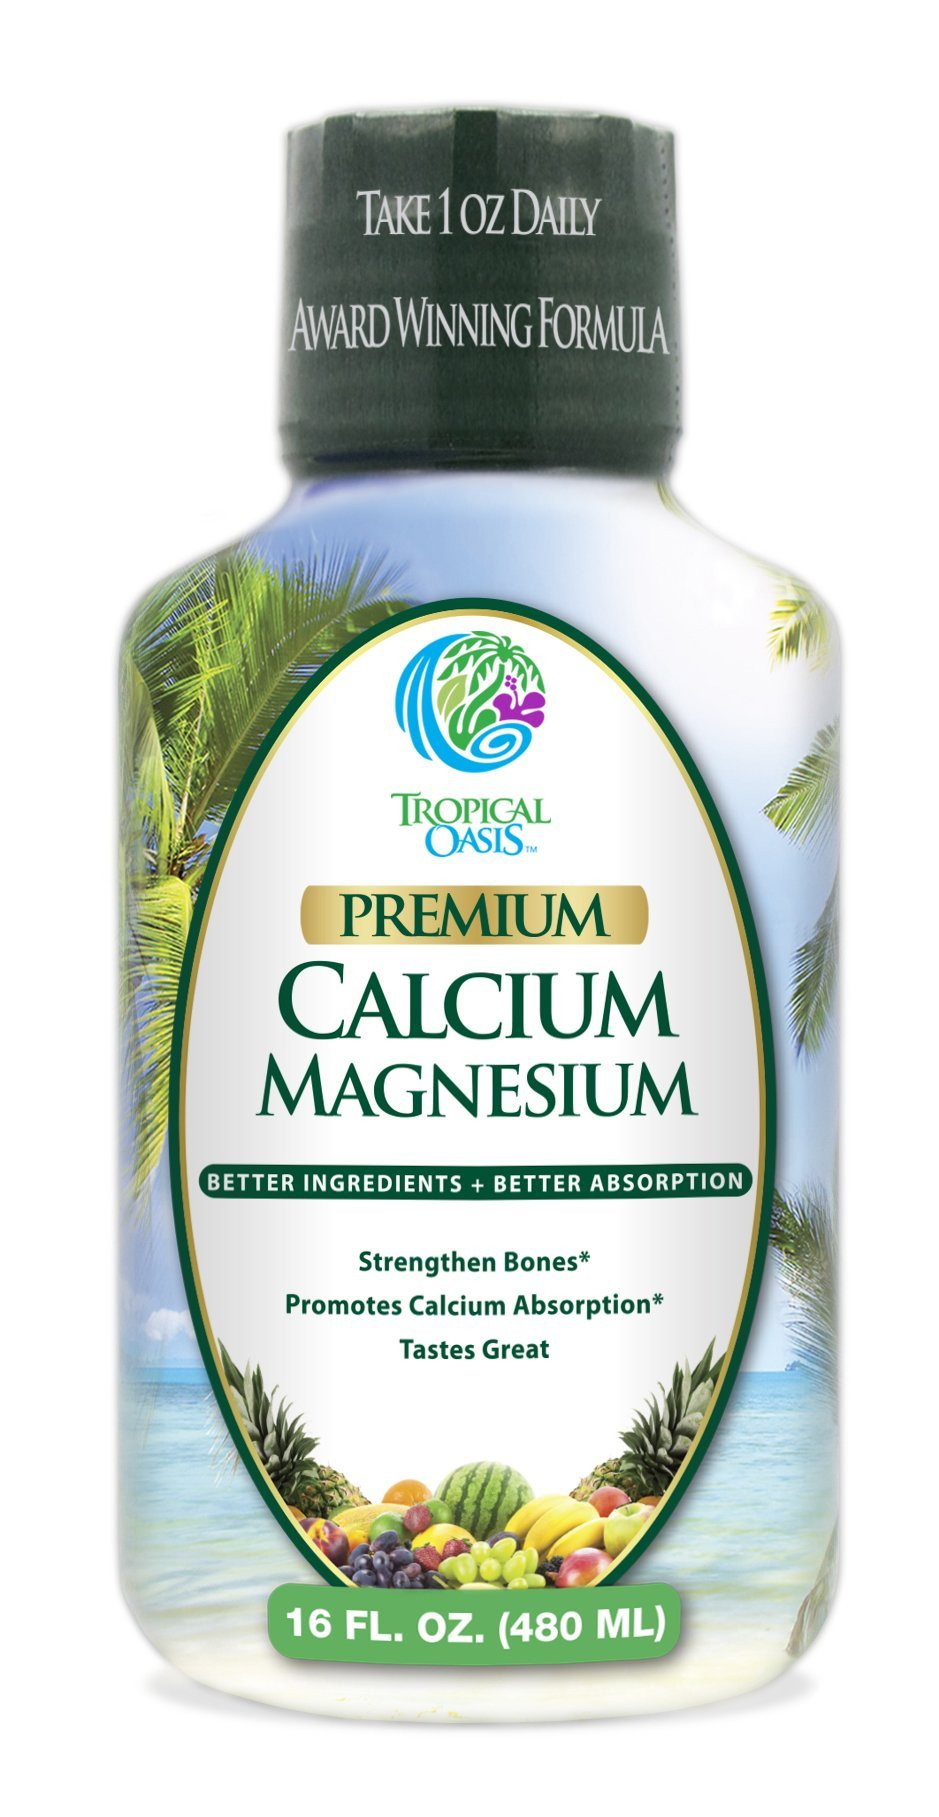 Tropical Oasis Liquid Calcium & Magnesium - Natural formula w/ support for strong bones - Liquid vitamins w/ calcium, magnesium & vitamin D - Up to 96% absorption by the body. - 16oz, 32 Serv.